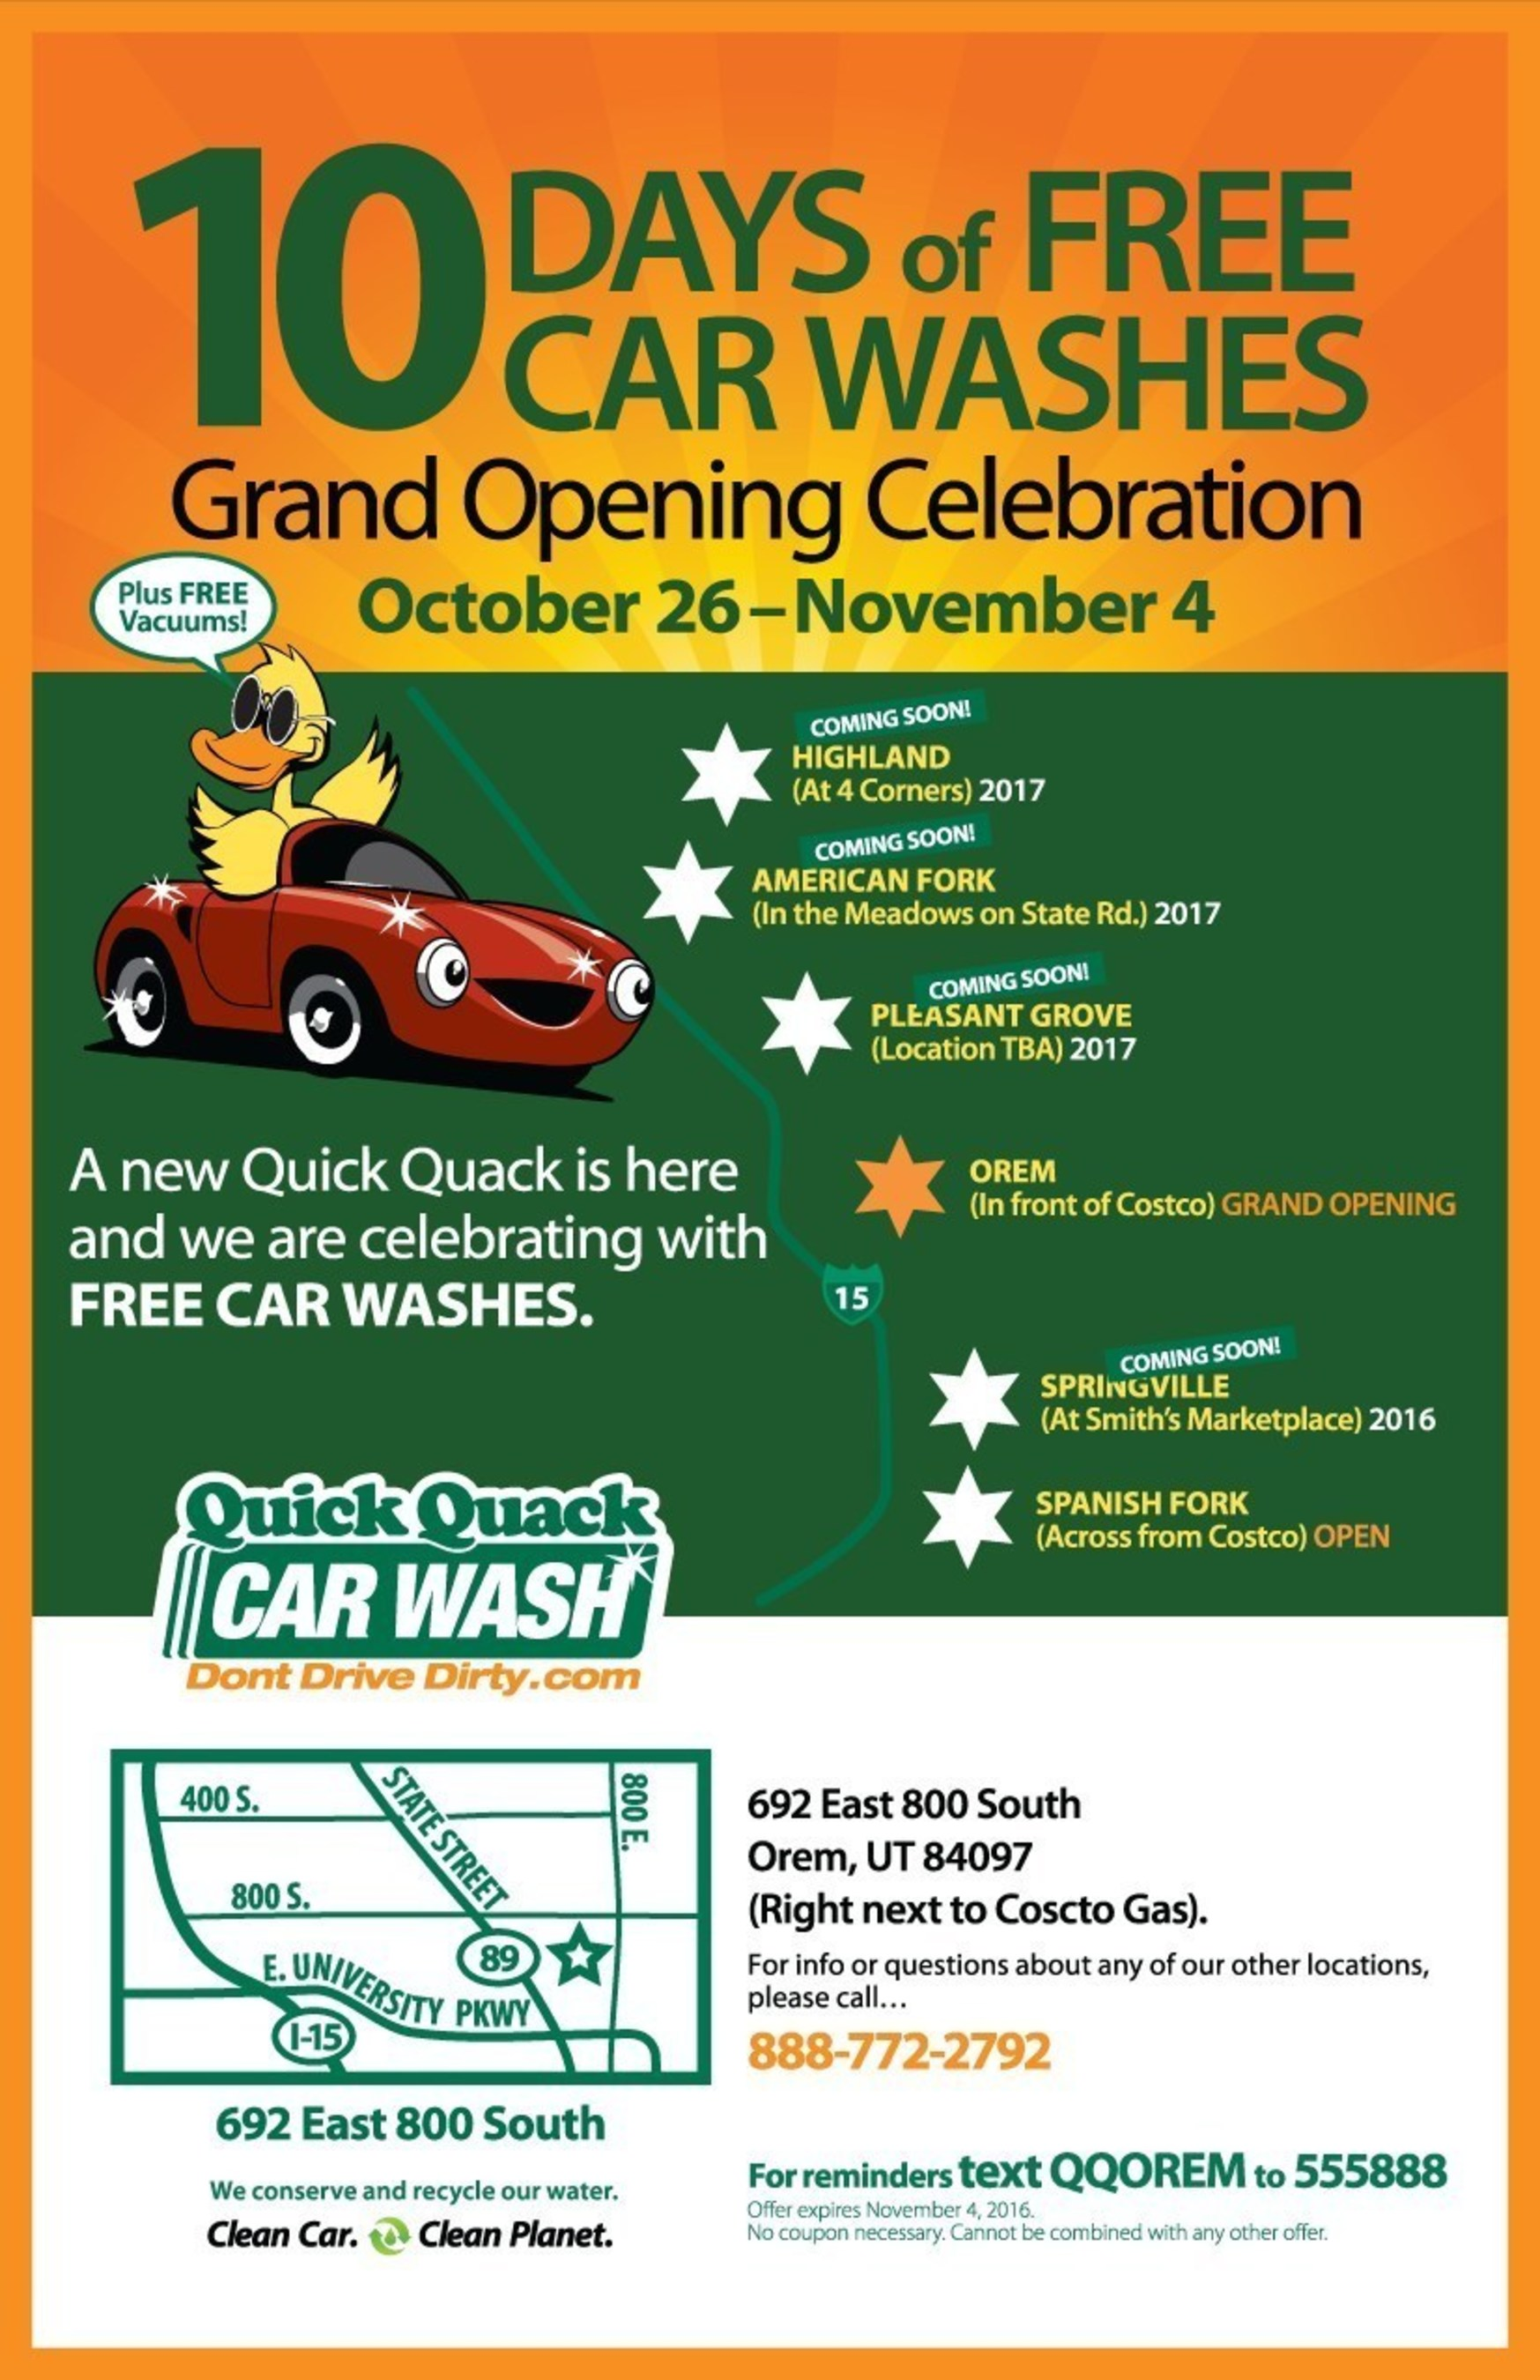 10 days of free car washes at Orem grand opening of Quick Quack Car Wash